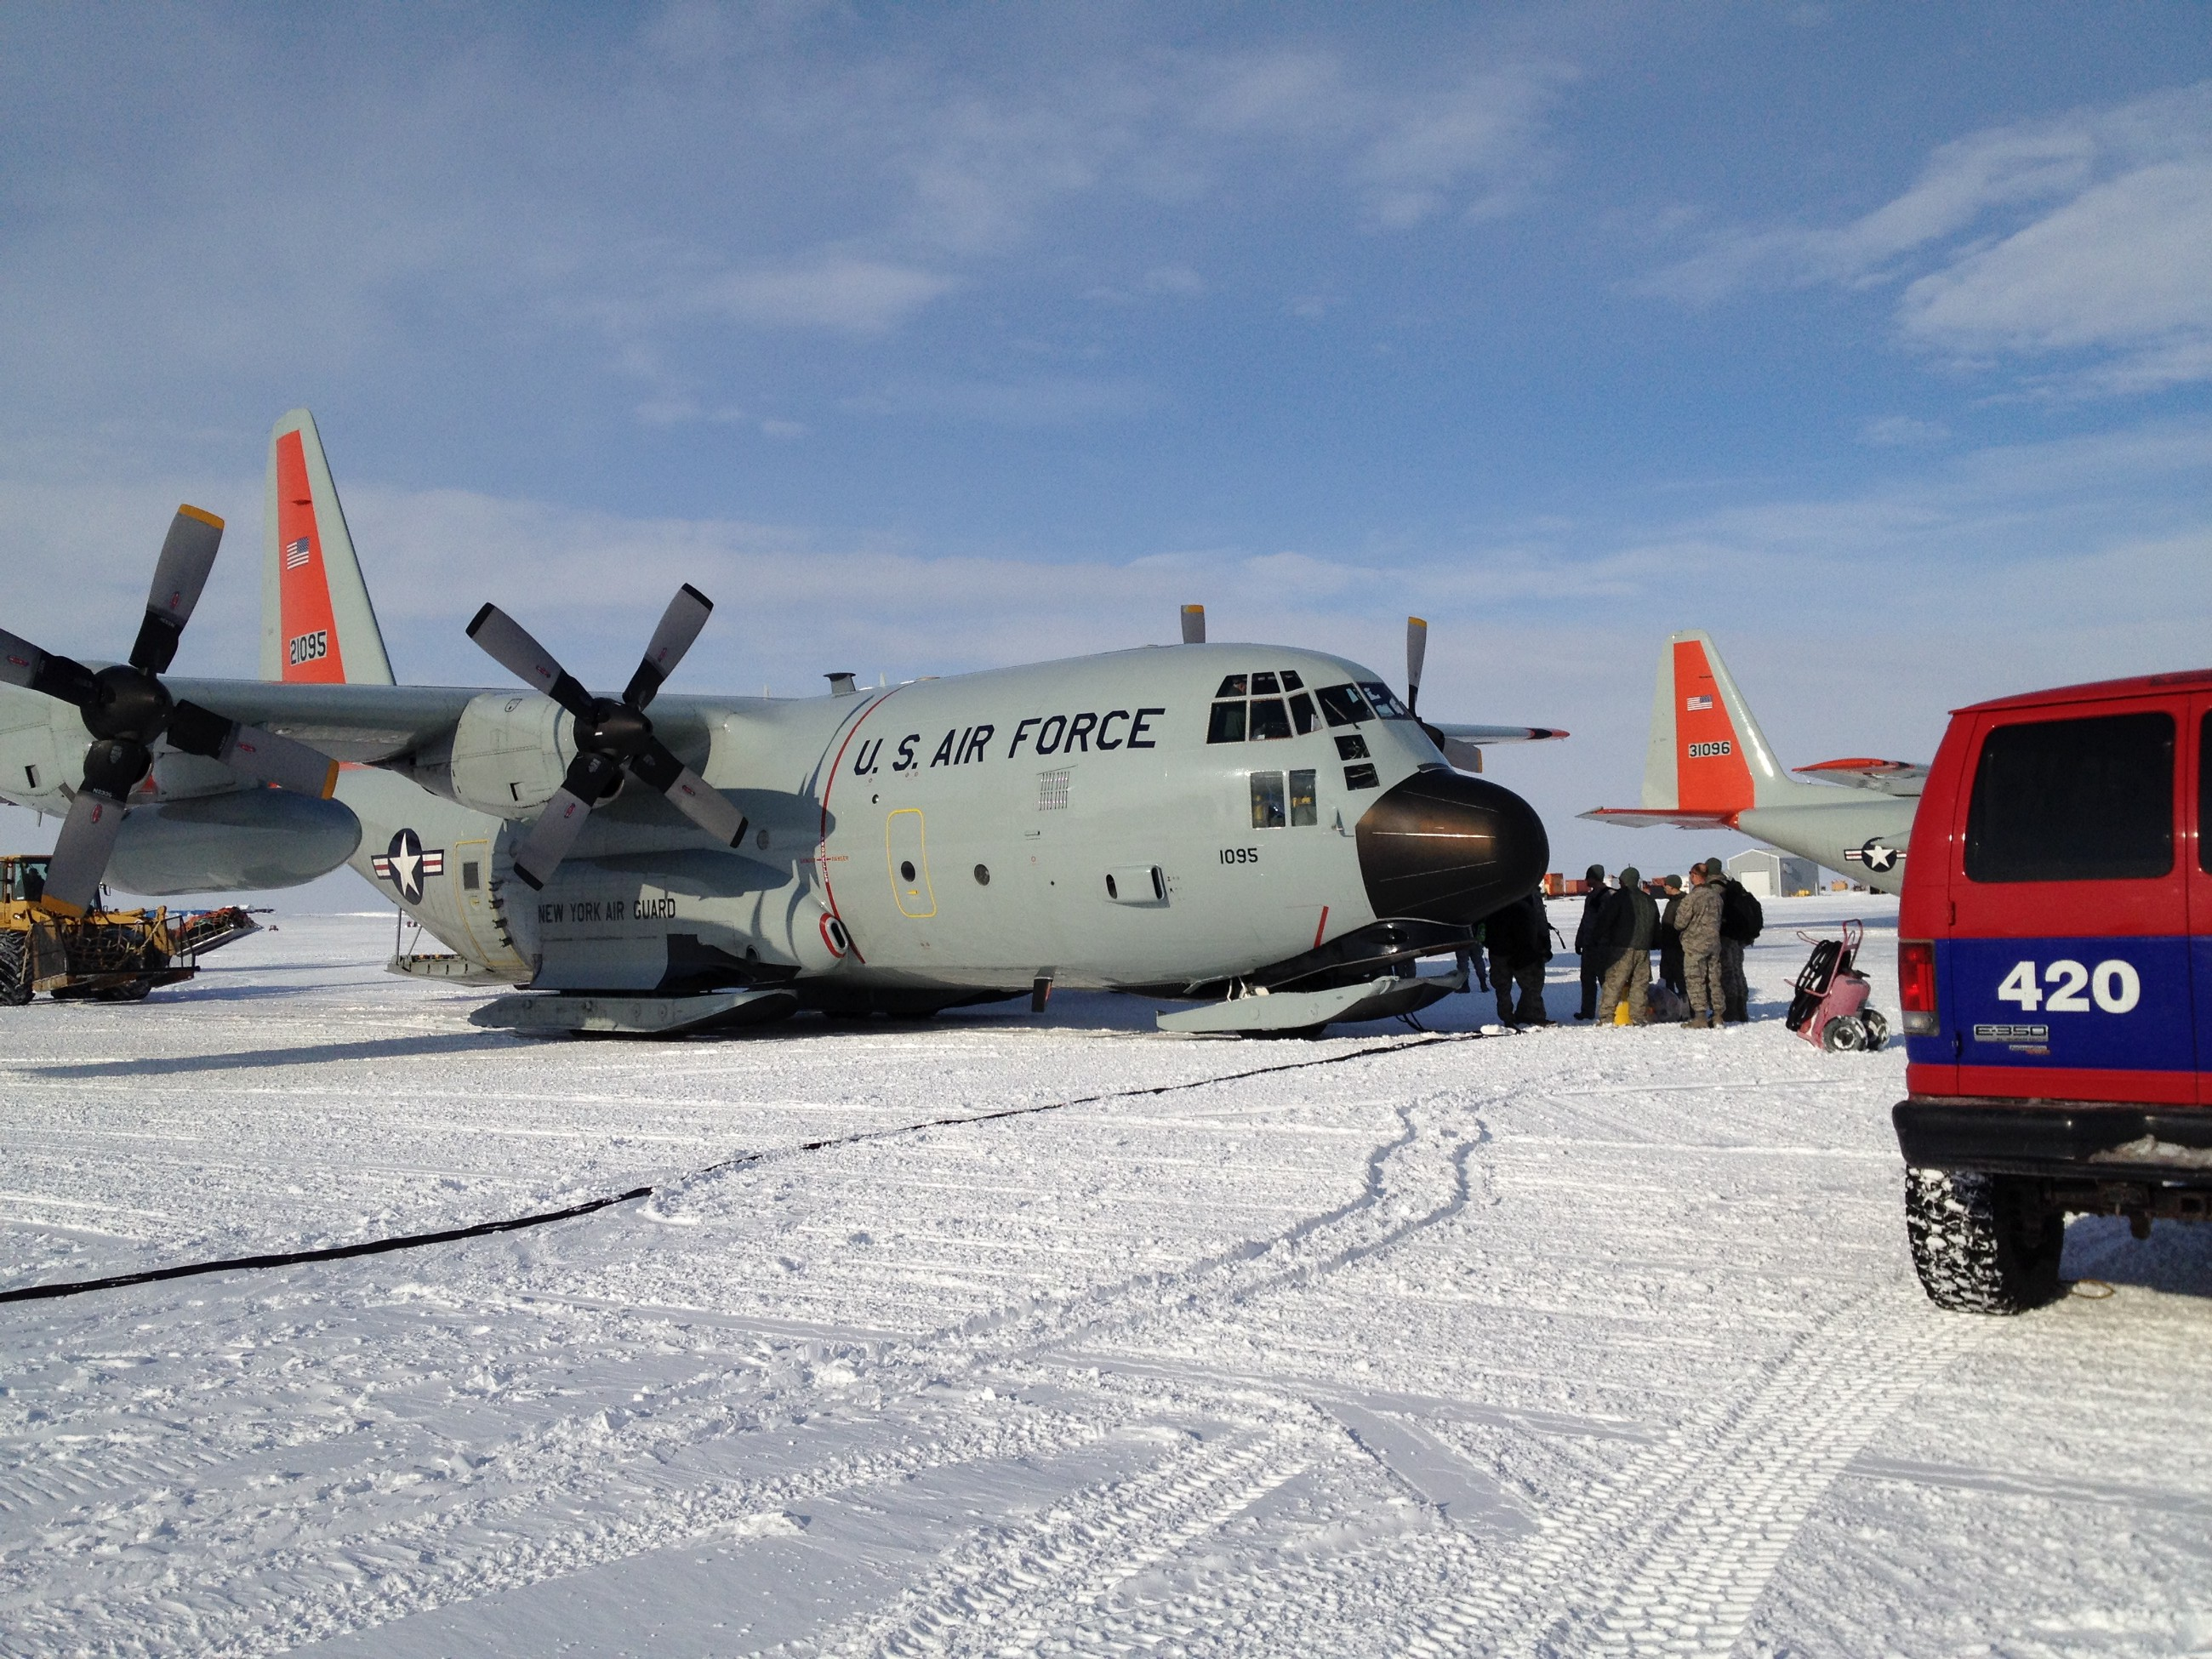 A frozen ocean and plus-sized transportation: Antarctic diary, part II